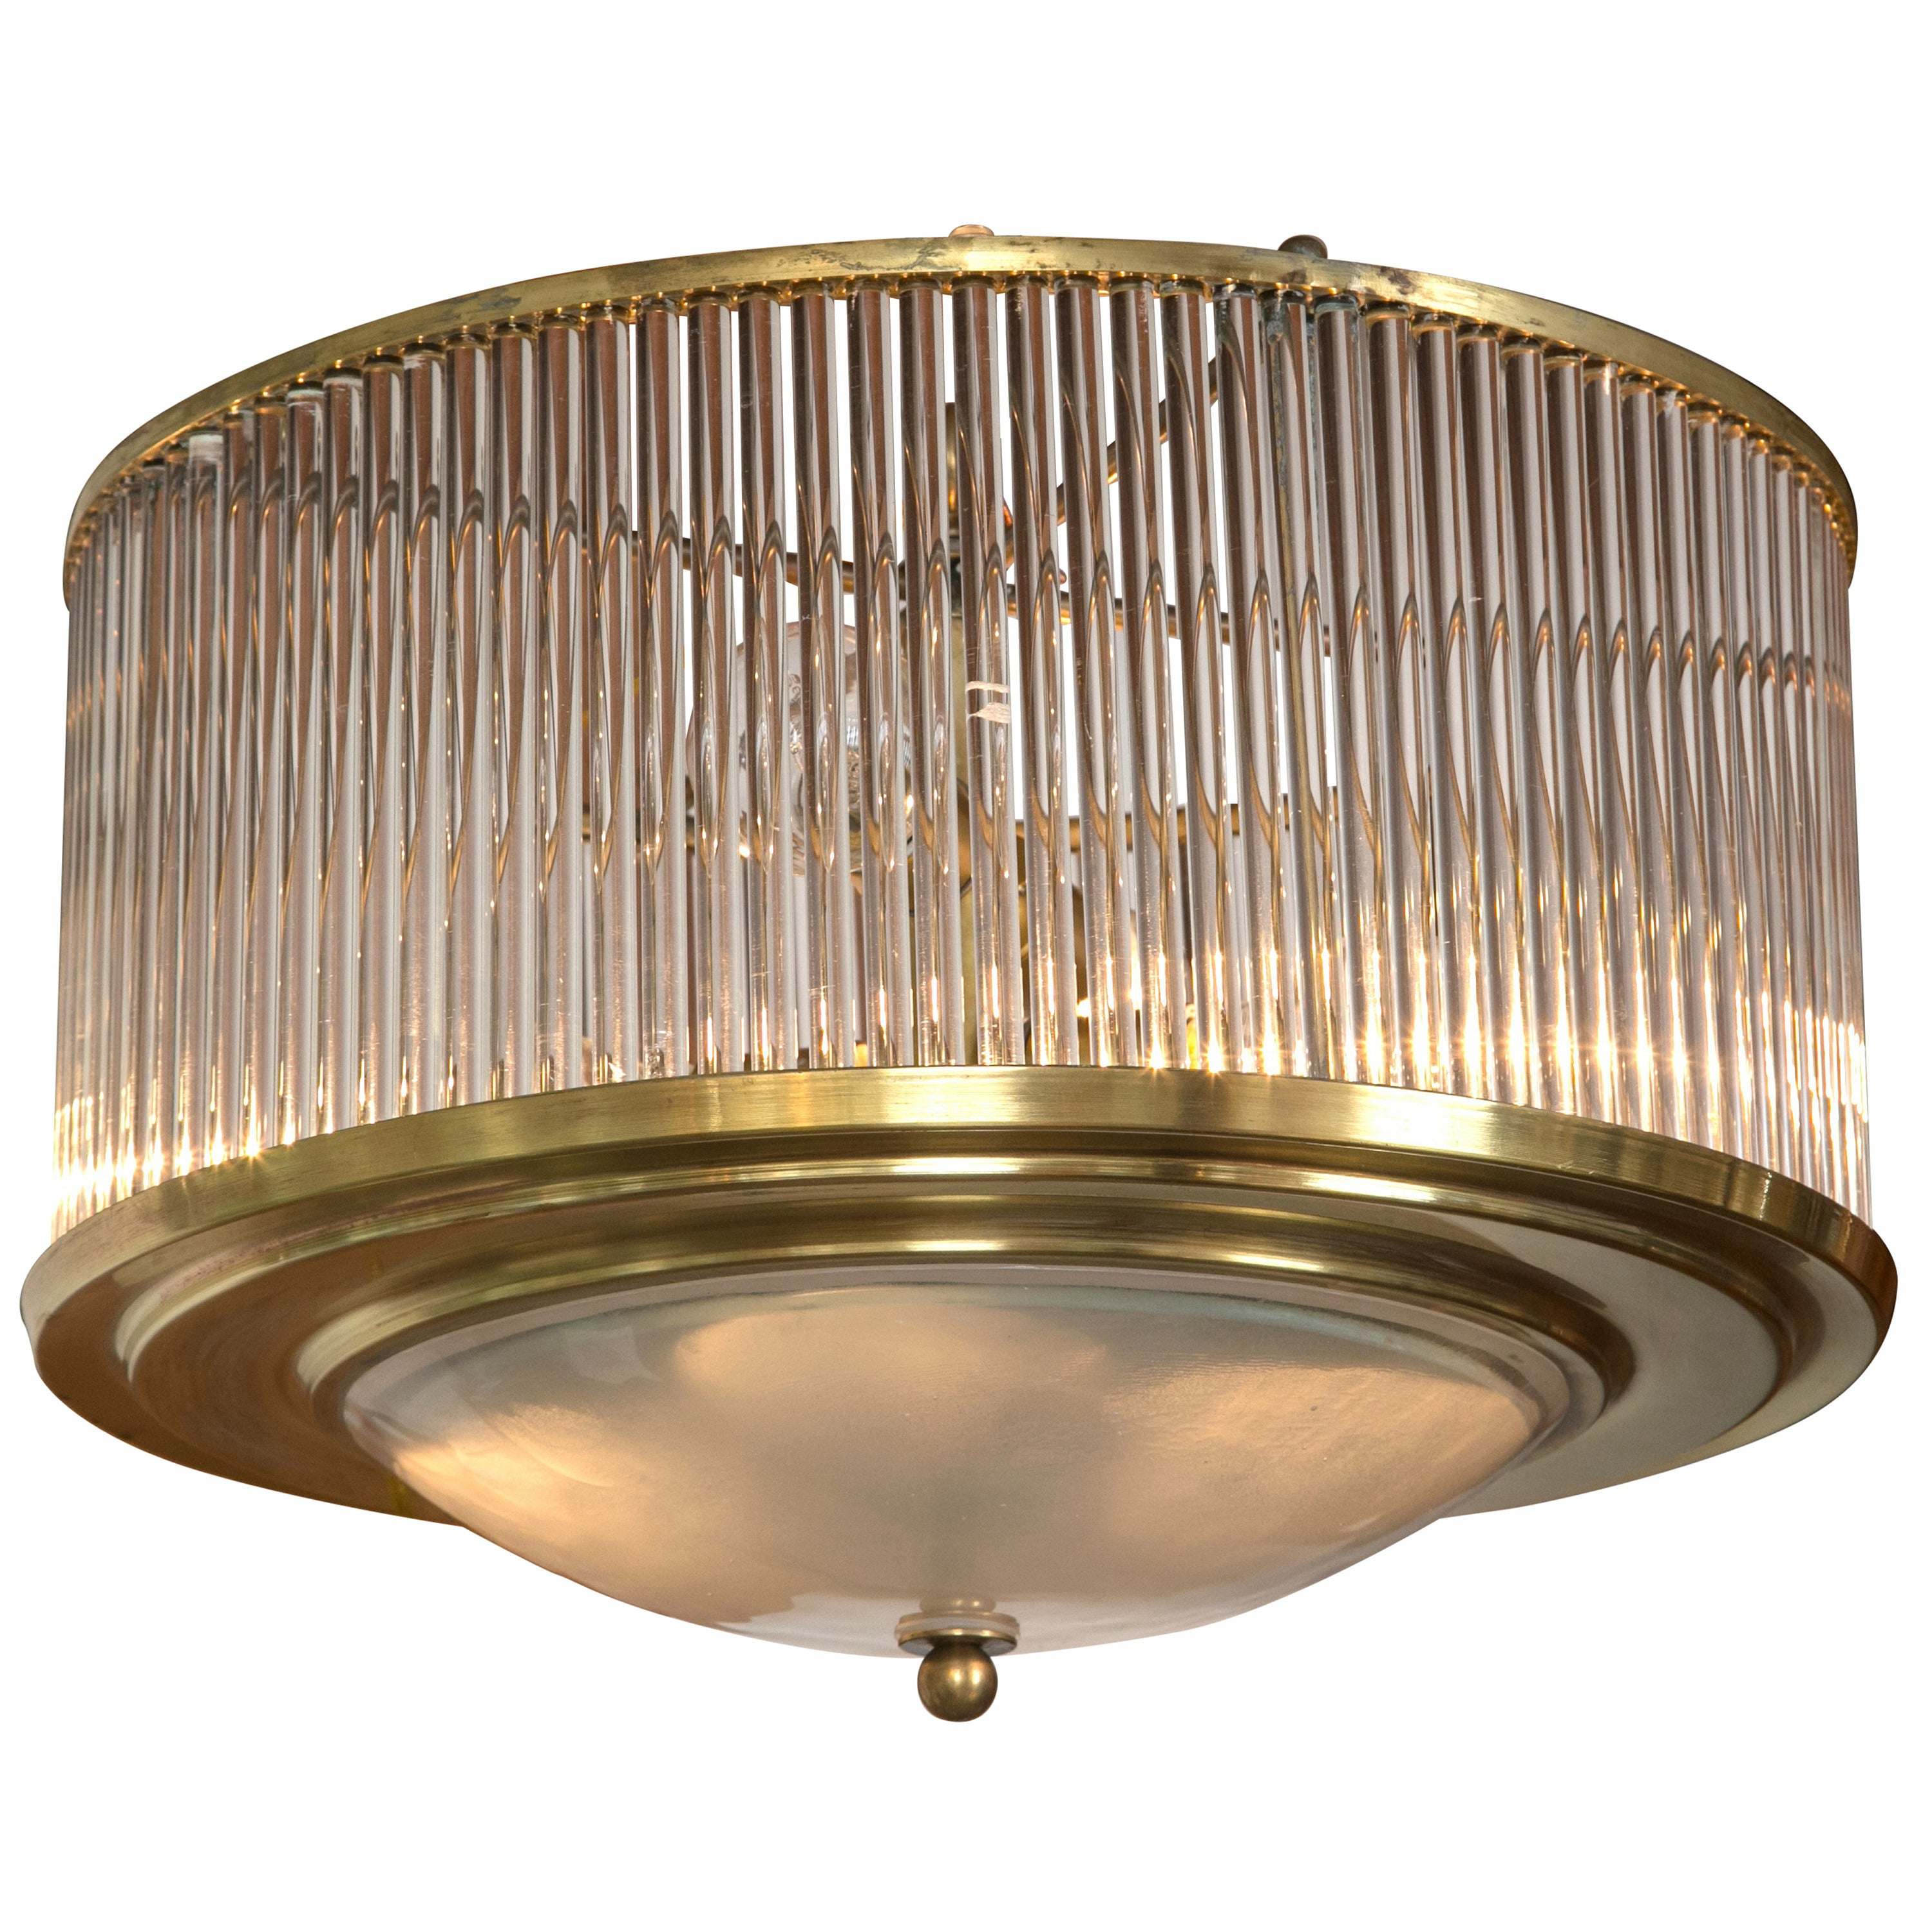 Larger Vintage Brass Straw Ceiling Fixture, stamped Venini/2 available